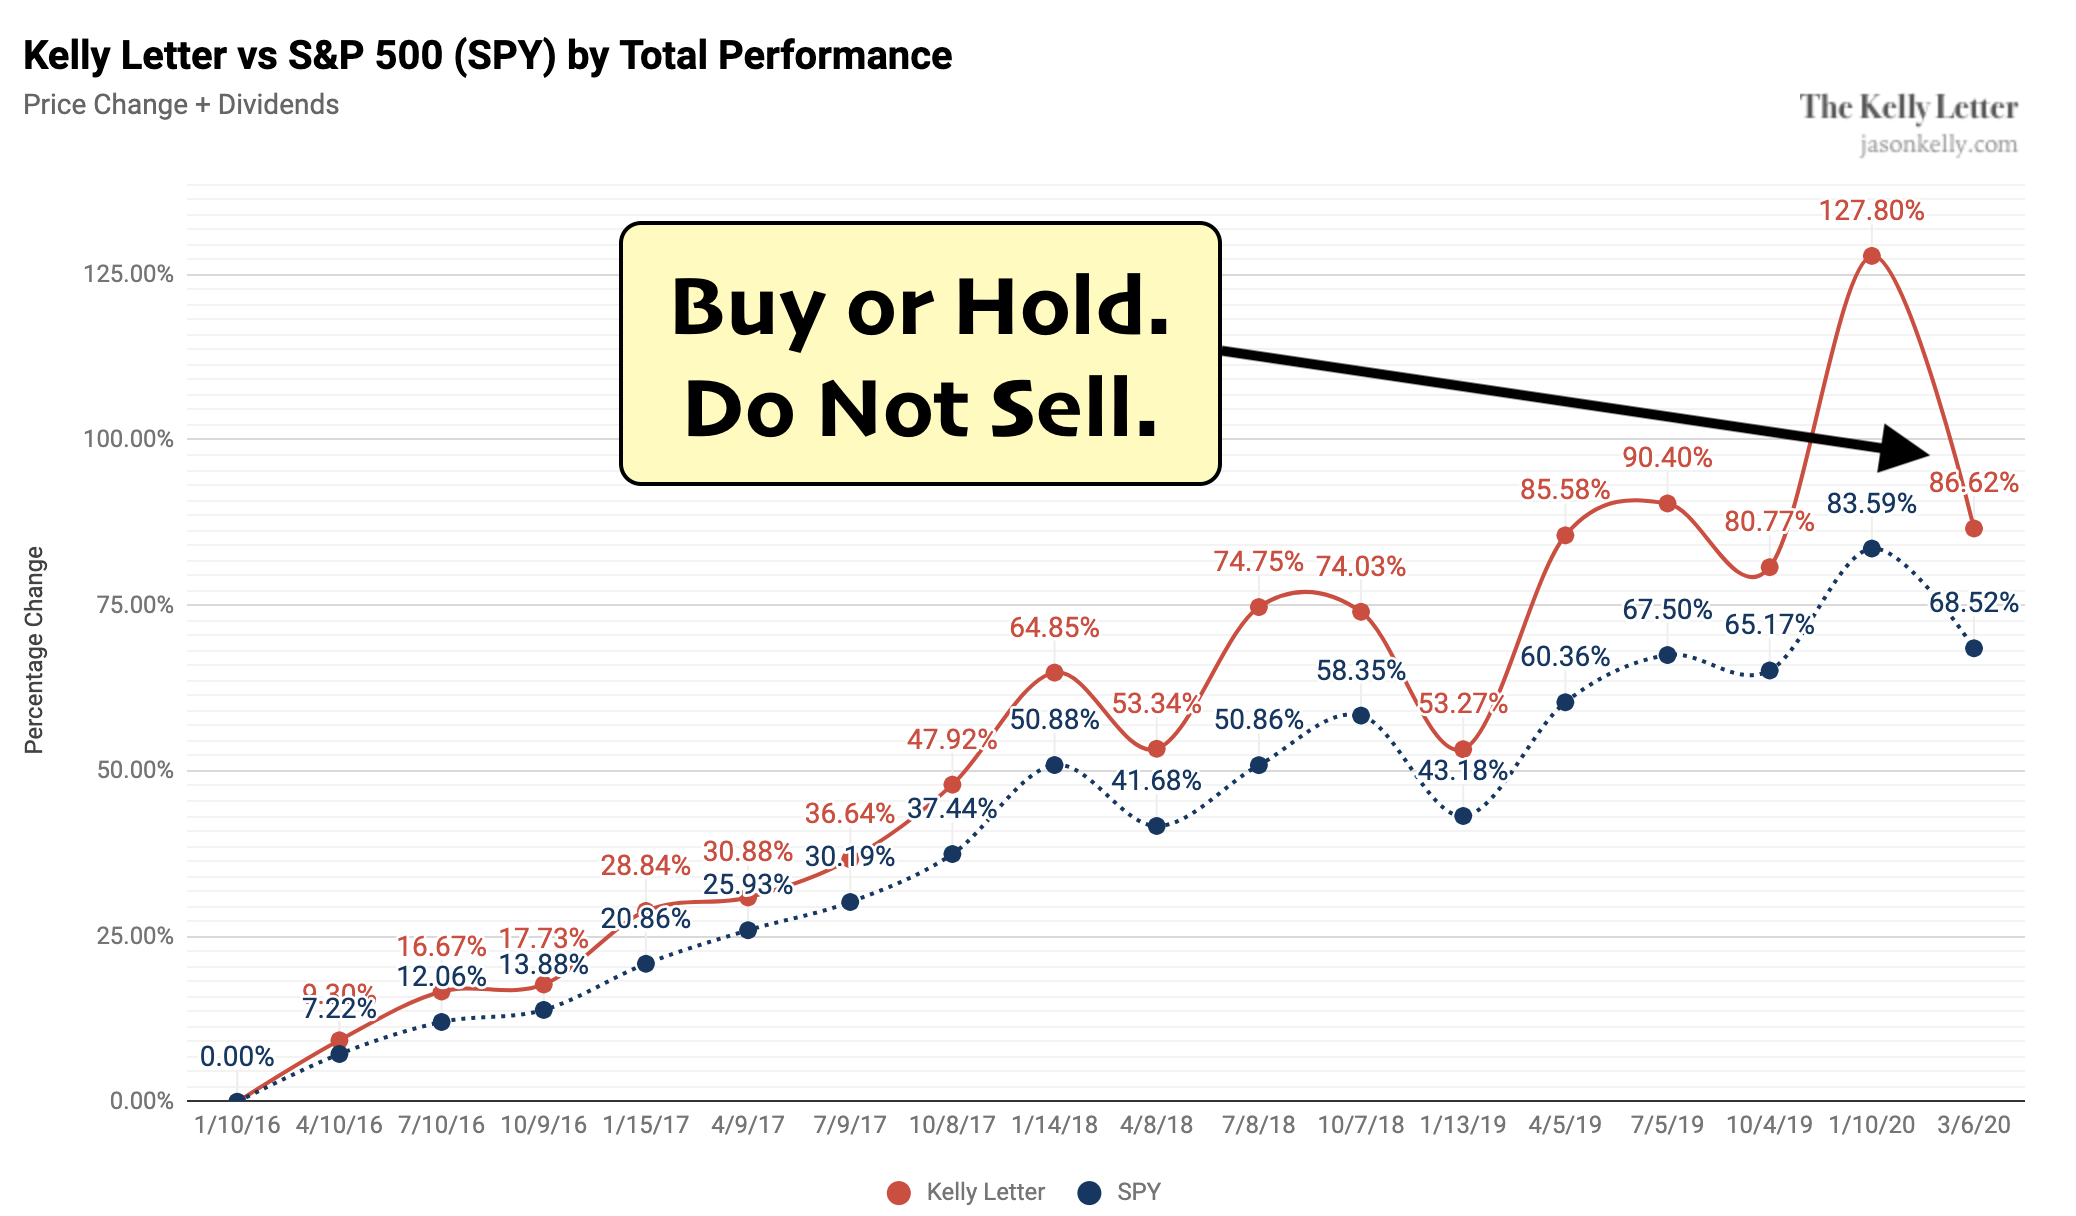 The Kelly Letter vs S&P 500 through 3/6/20